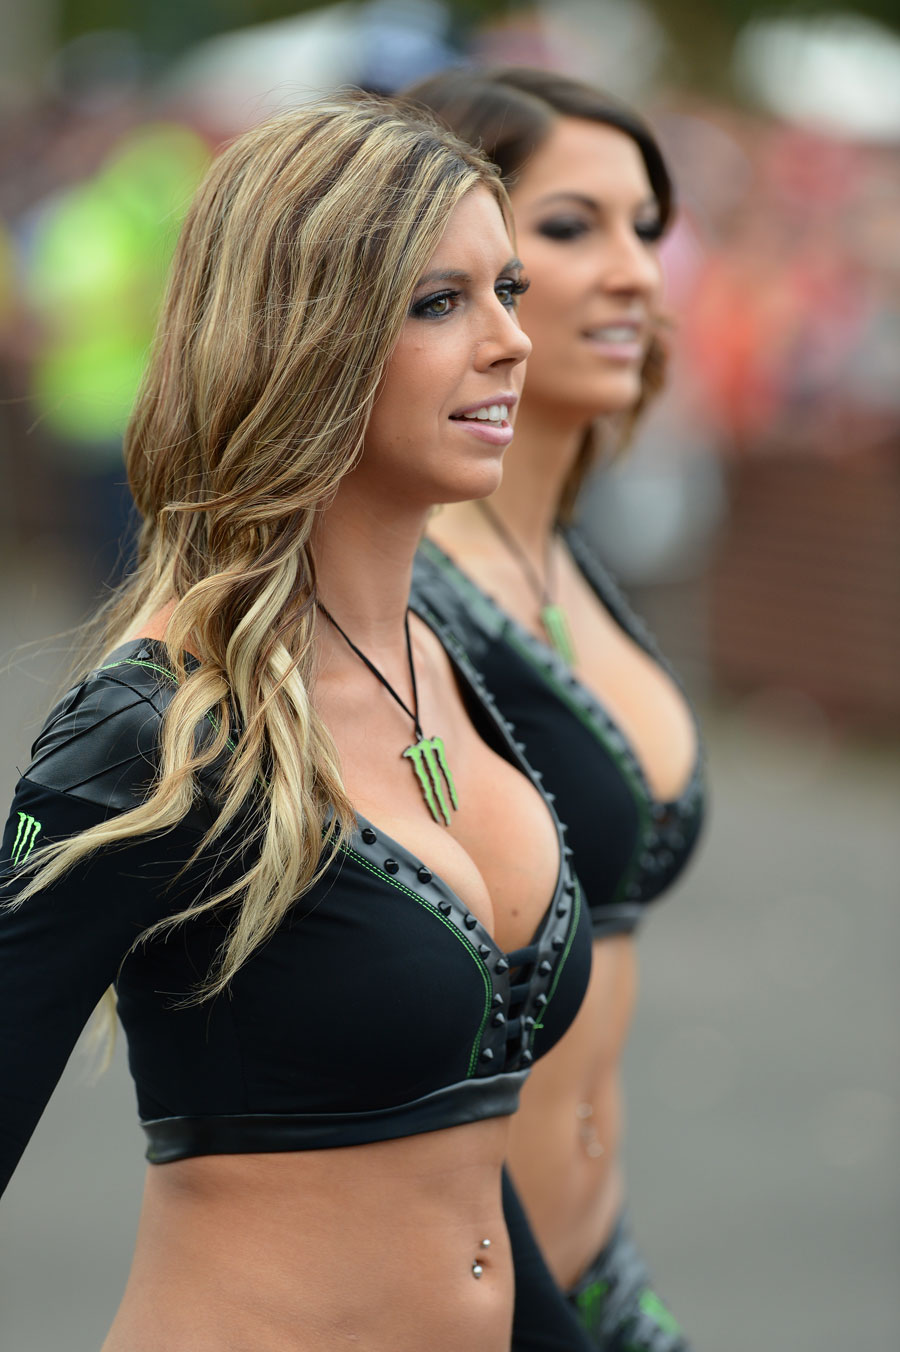 A grid girl at Albert Park